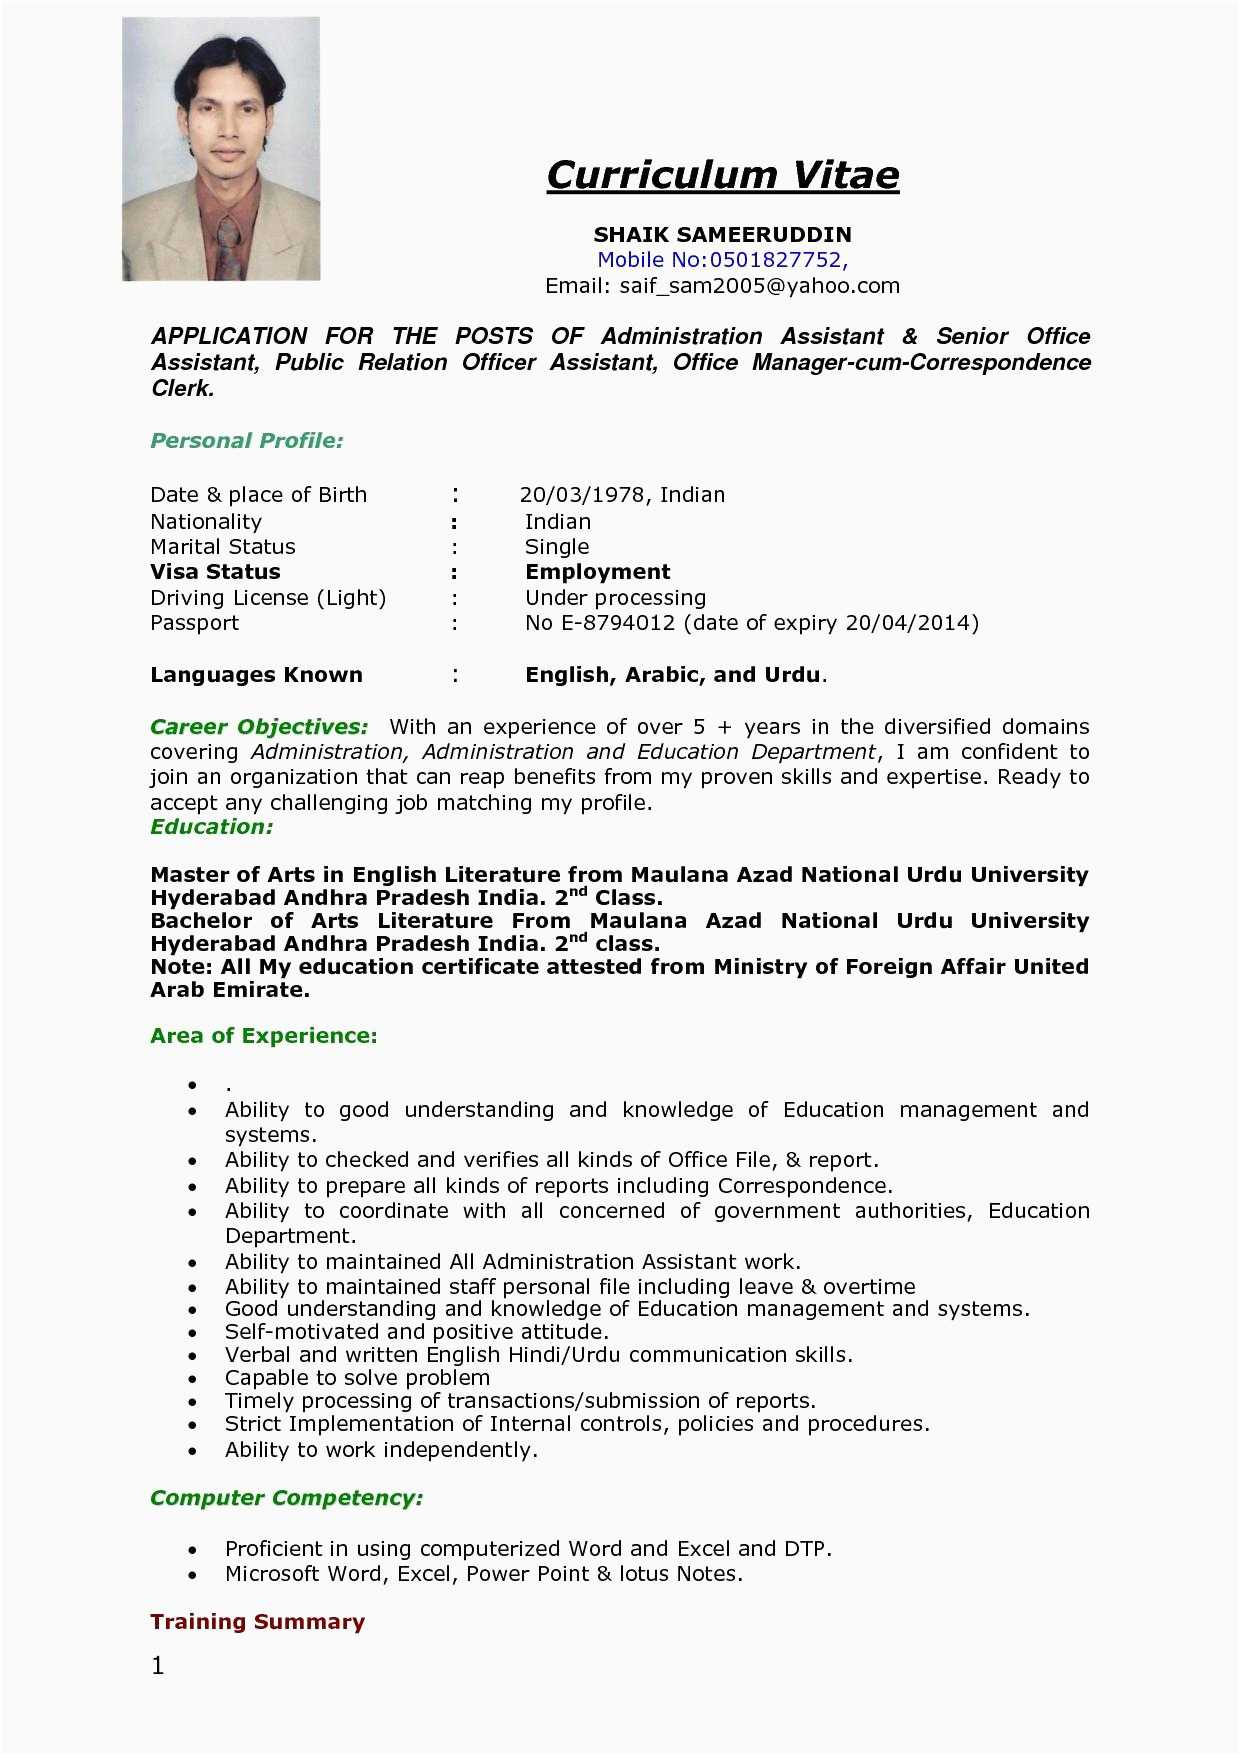 Resume for Office Job - 27 Resume Temples 2018